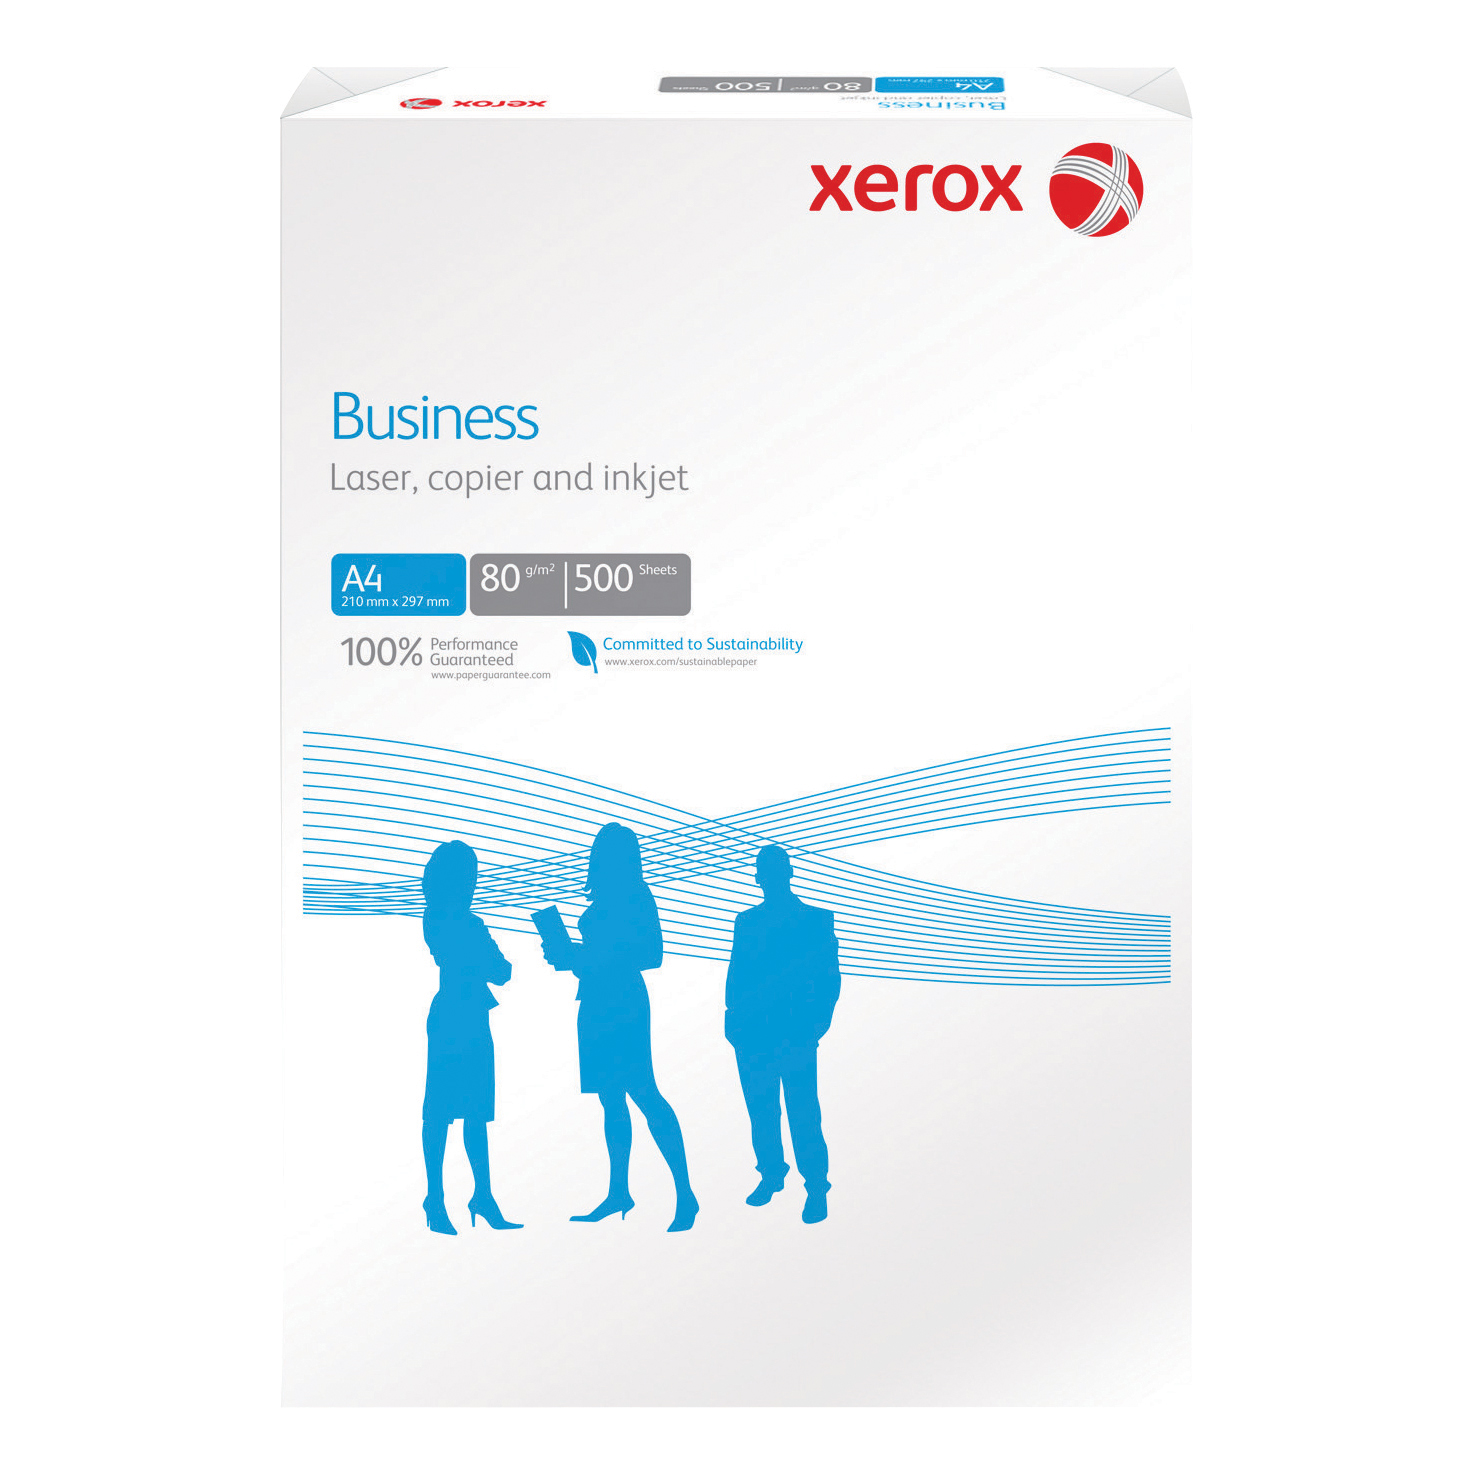 Xerox Business Multifunctional Paper Ream-Wrapped 80gsm A4 White Ref 62283 500 Sheets